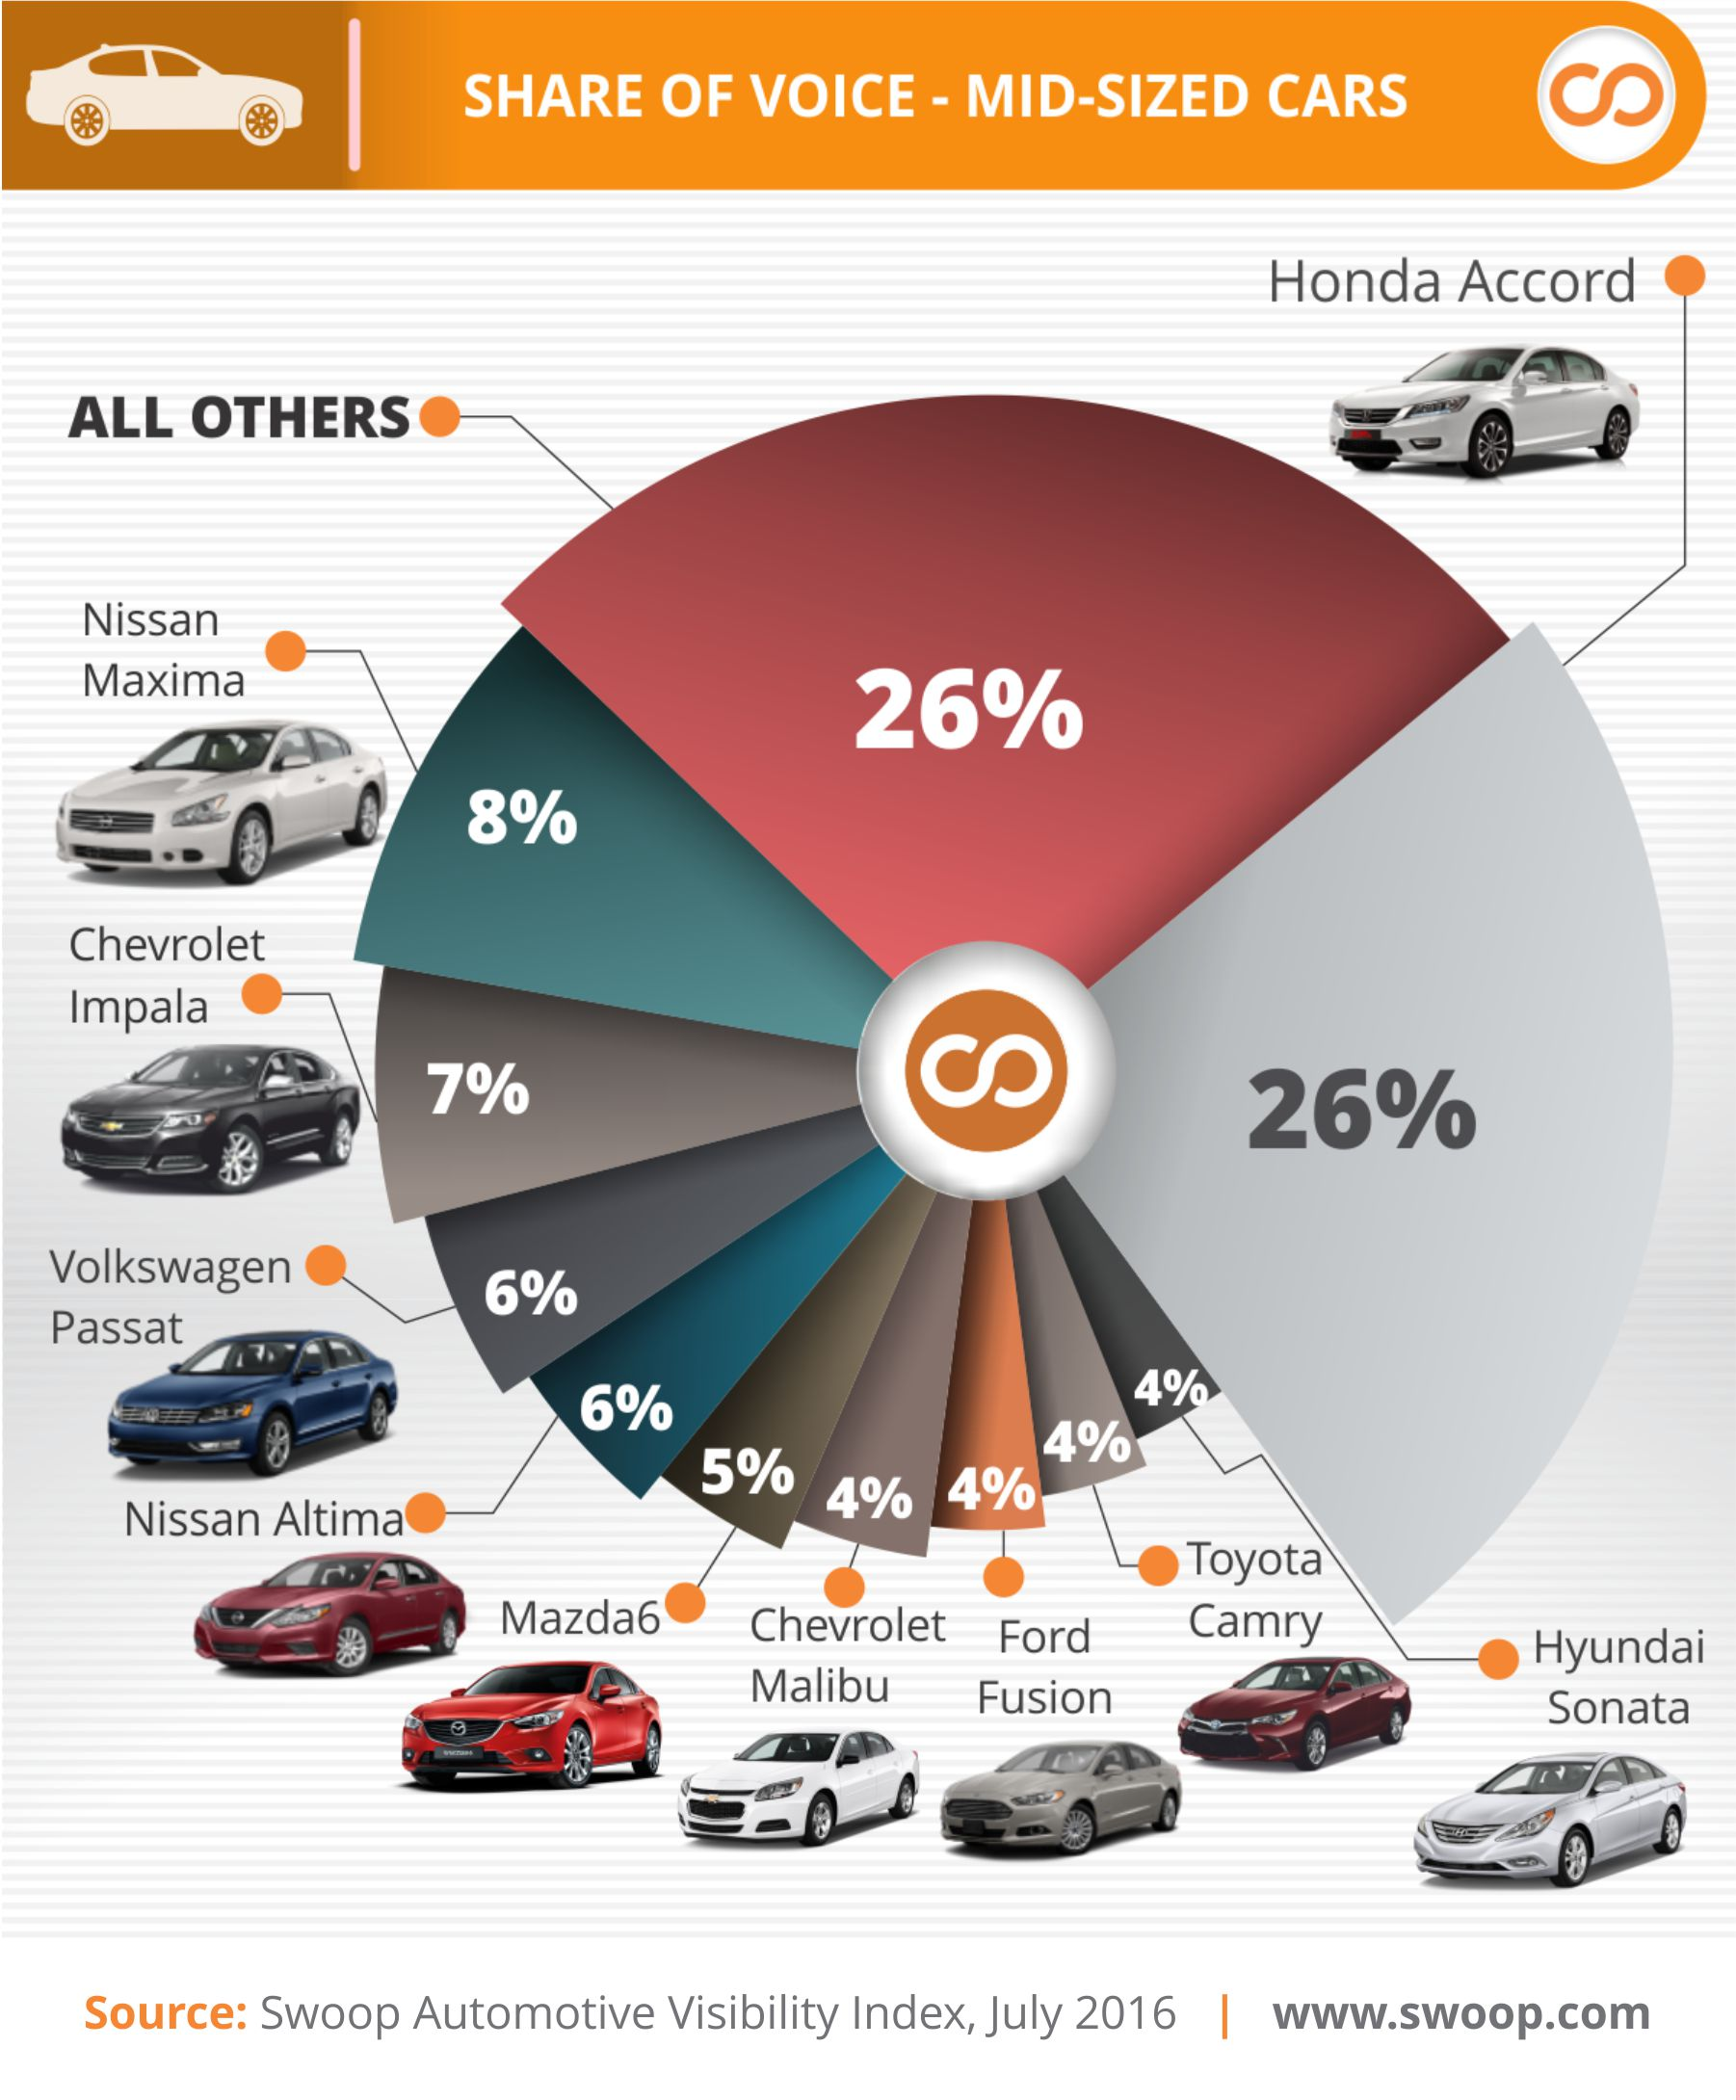 Swoop Most Visible Midsize Cars Q2 2016